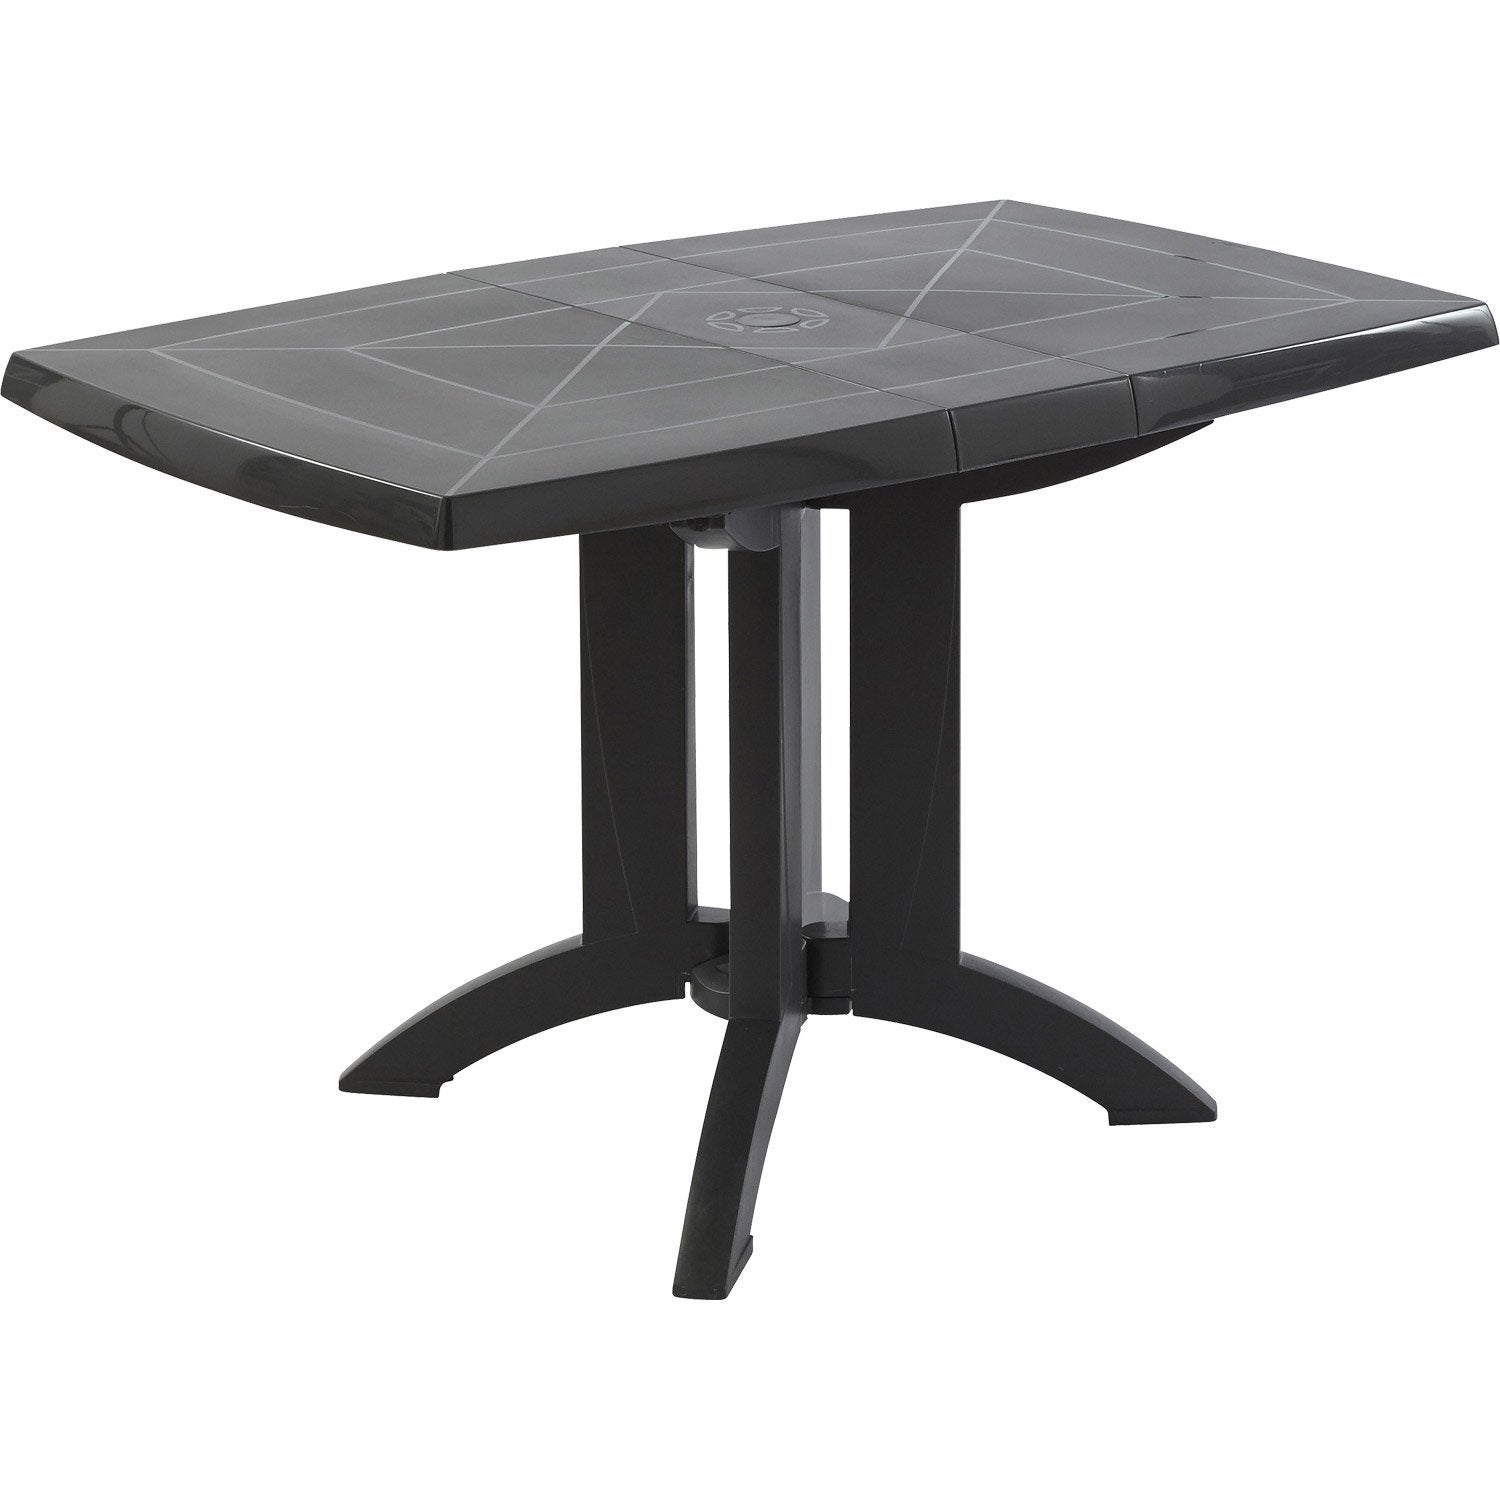 Table de jardin rectangulaire v ga leroy merlin for Table extensible leroy merlin